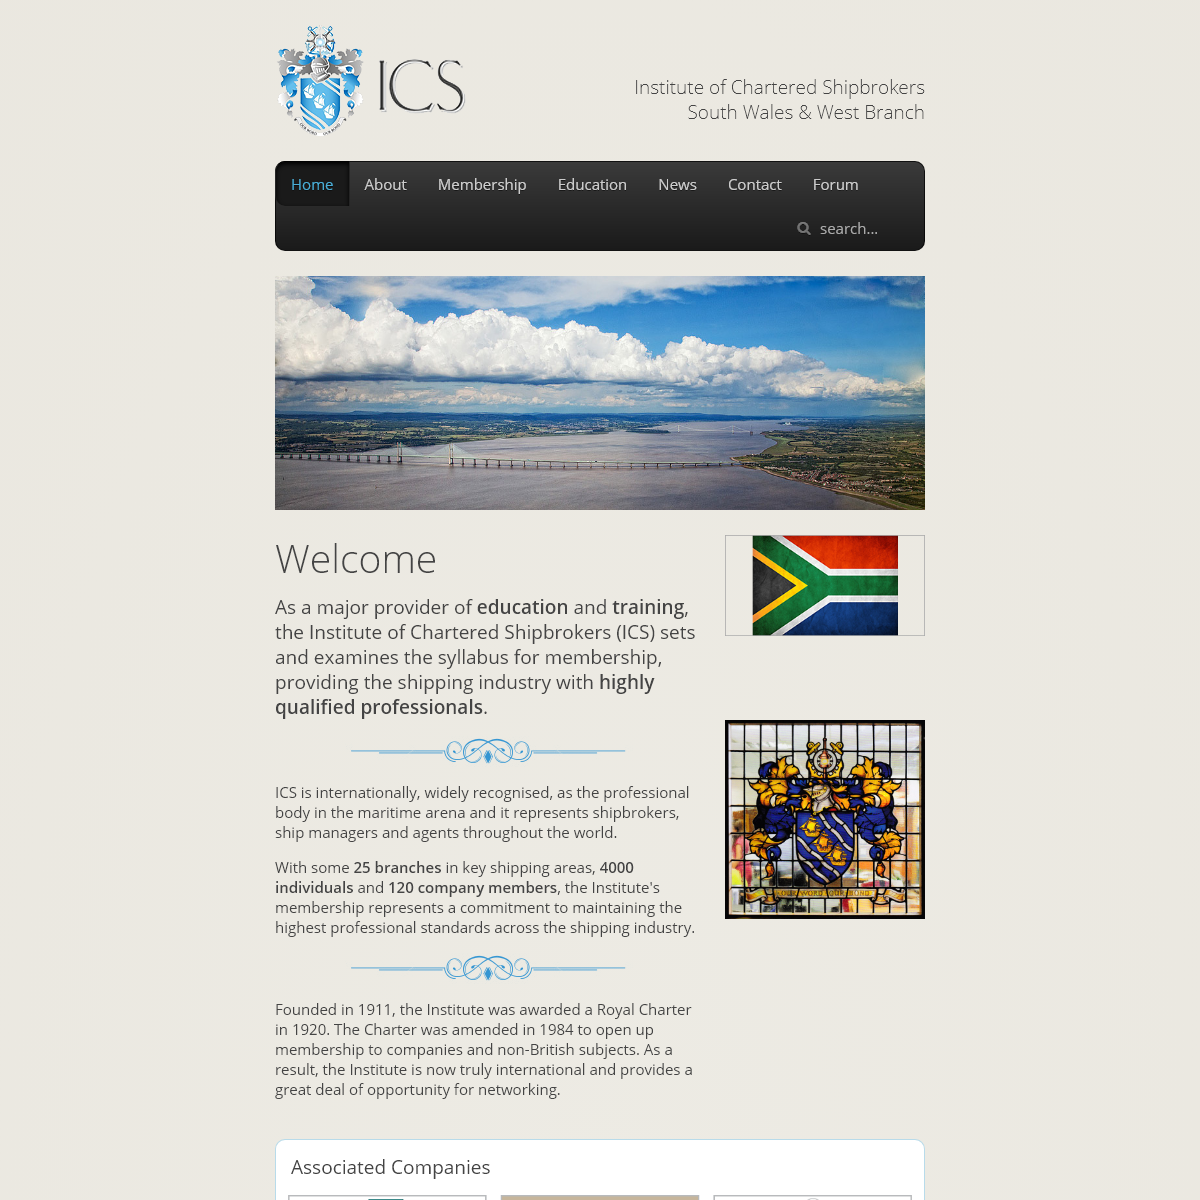 Institute of Chartered Shipbrokers - South Wales & West